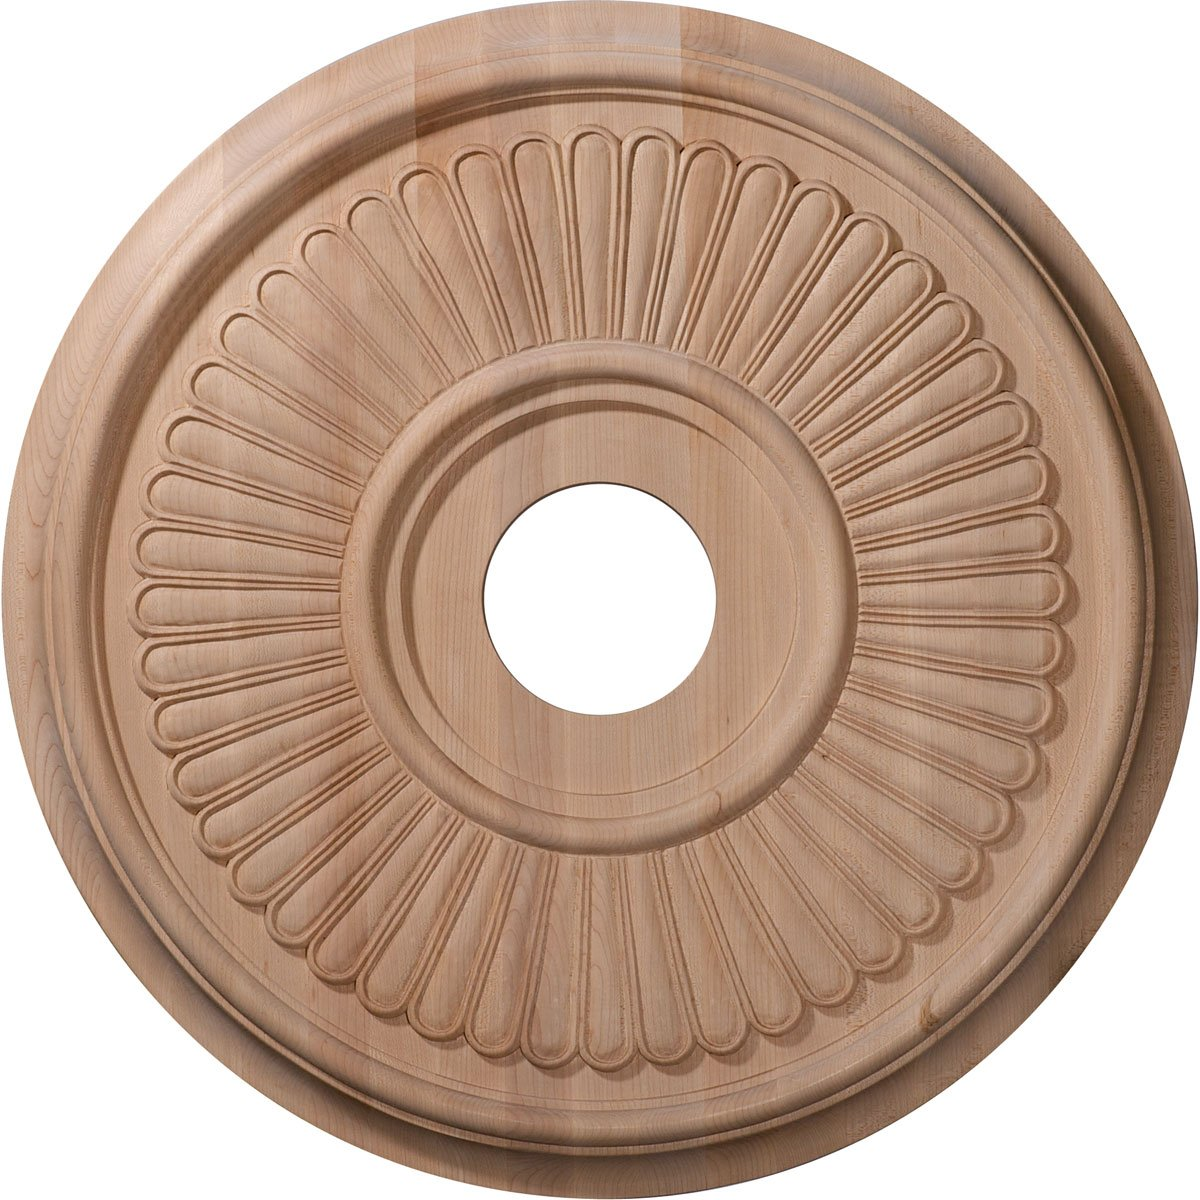 Ekena Millwork CMW20BERO 20-Inch OD x 1 3/4-Inch P Carved Berkshire Ceiling Medallion, Red Oak by Ekena Millwork